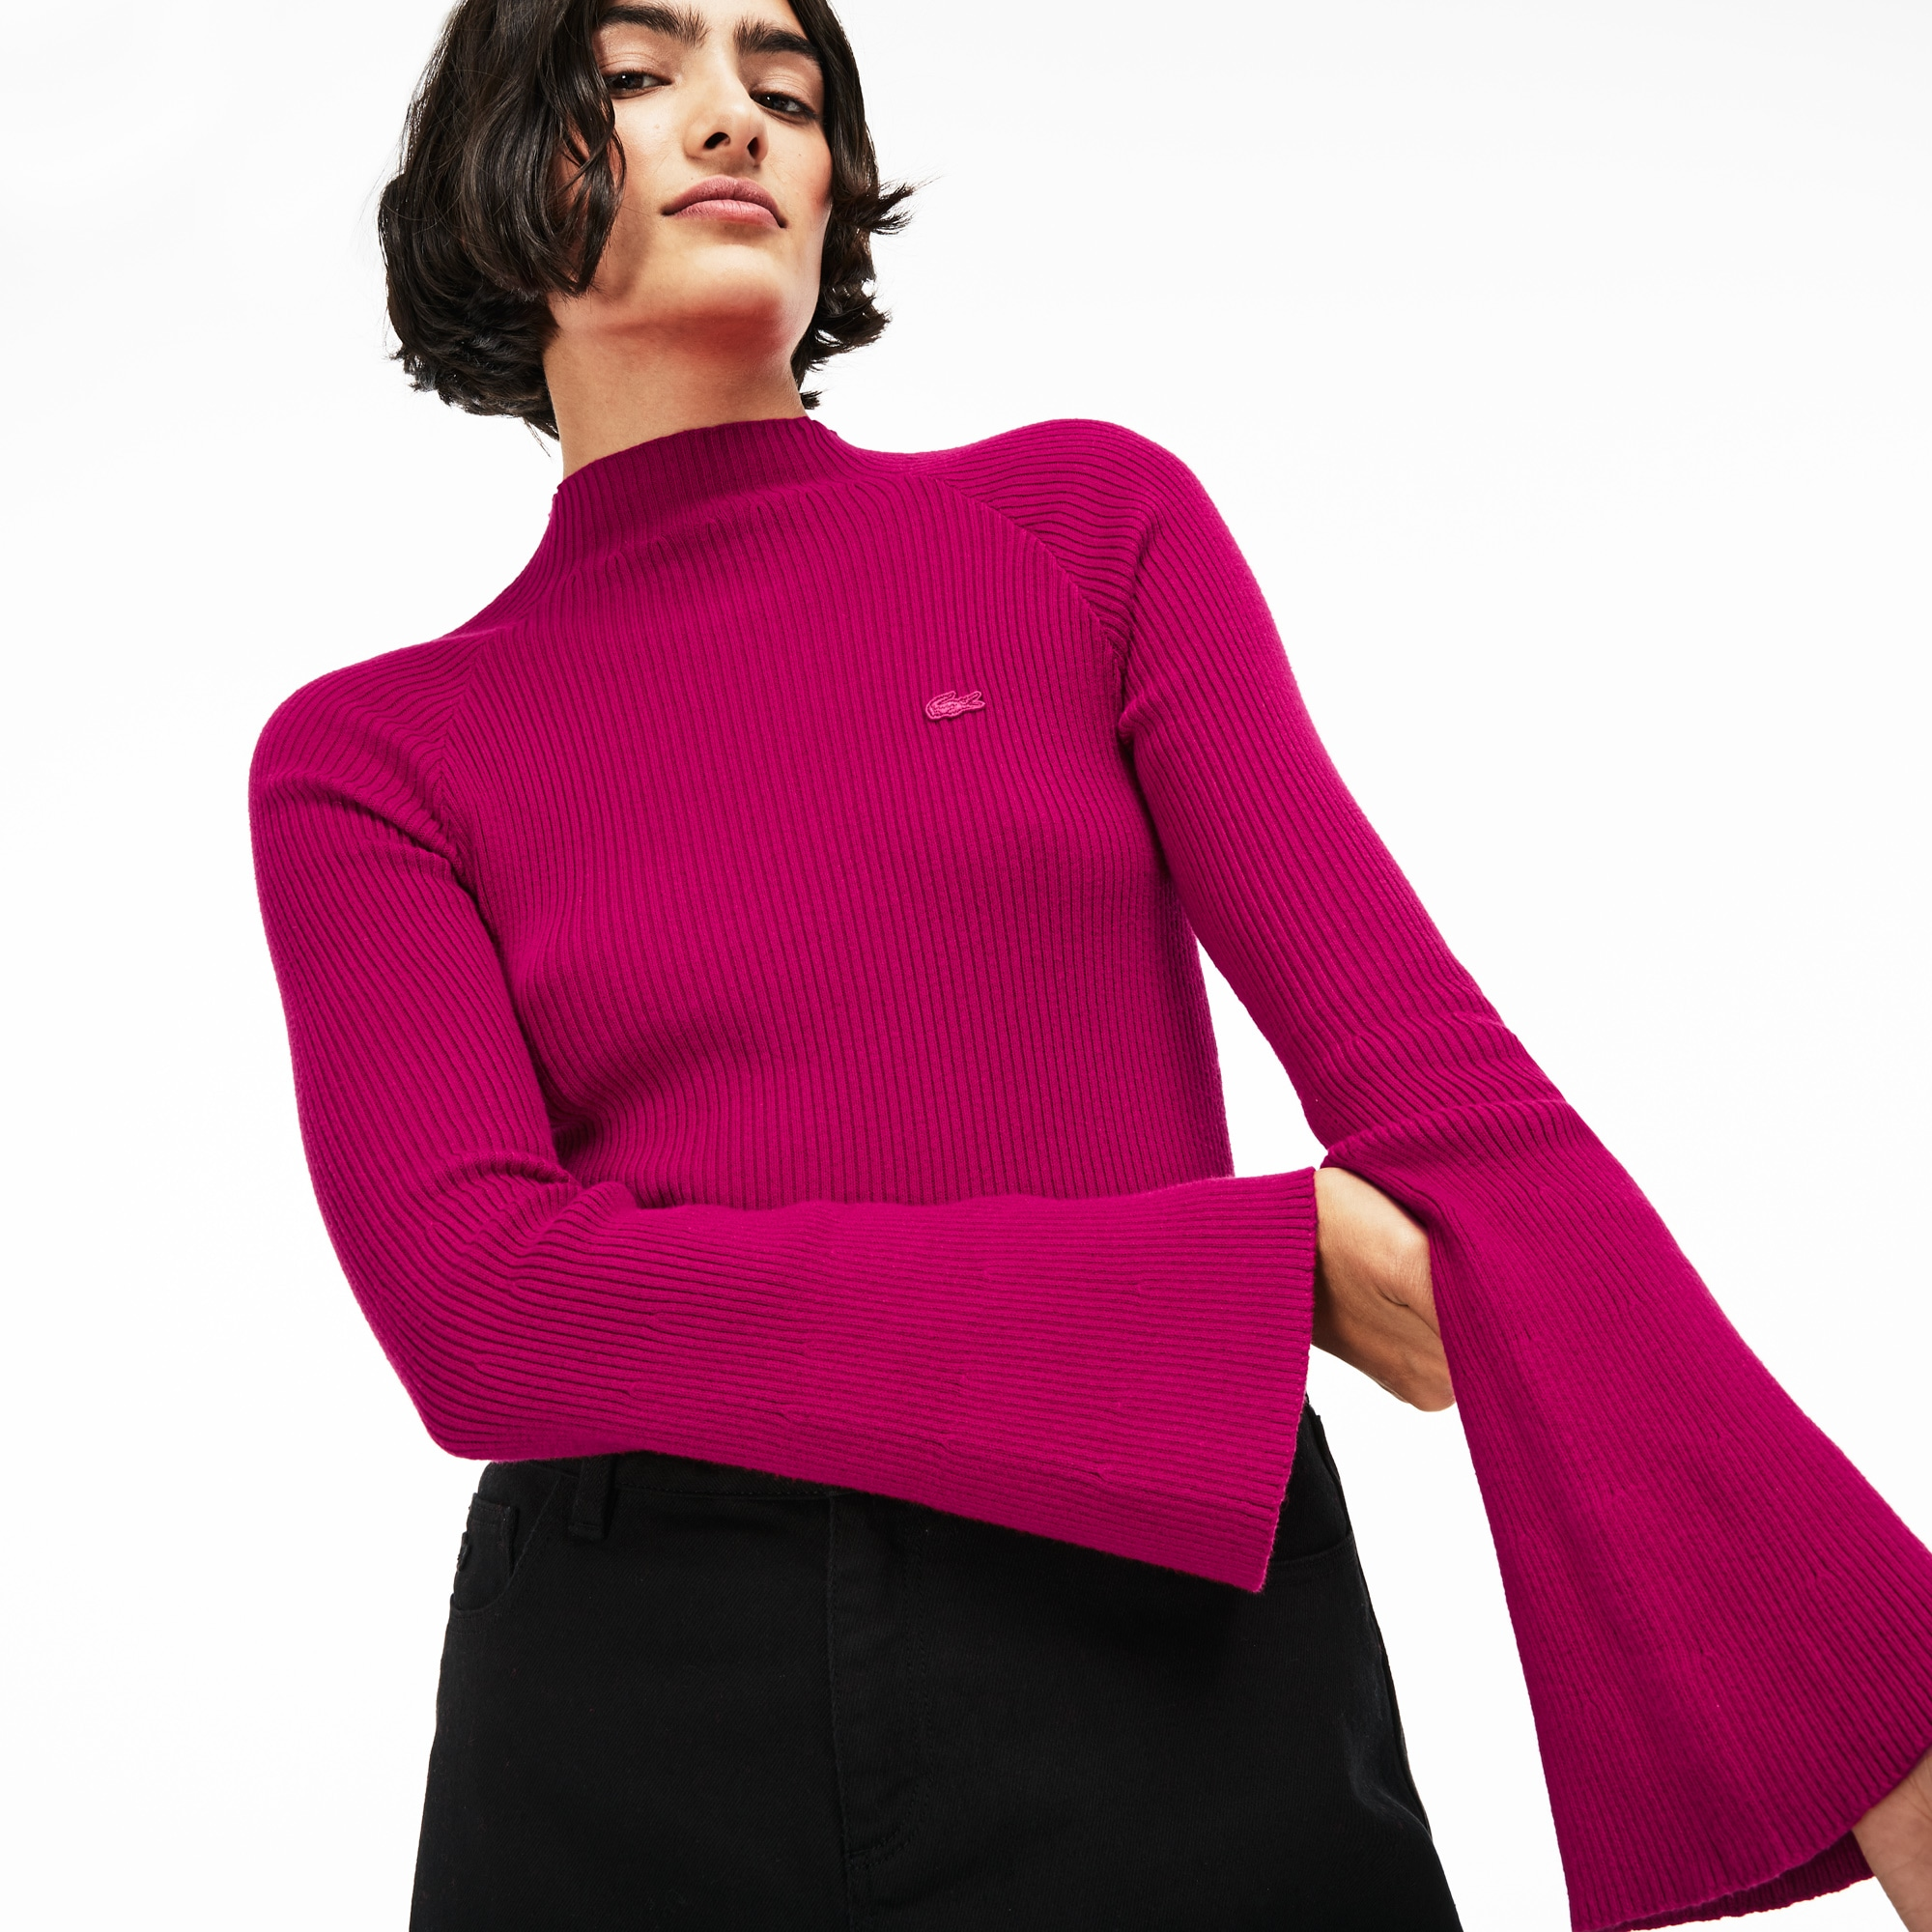 Women's LIVE Ribbed Cotton And Cashmere Sweater